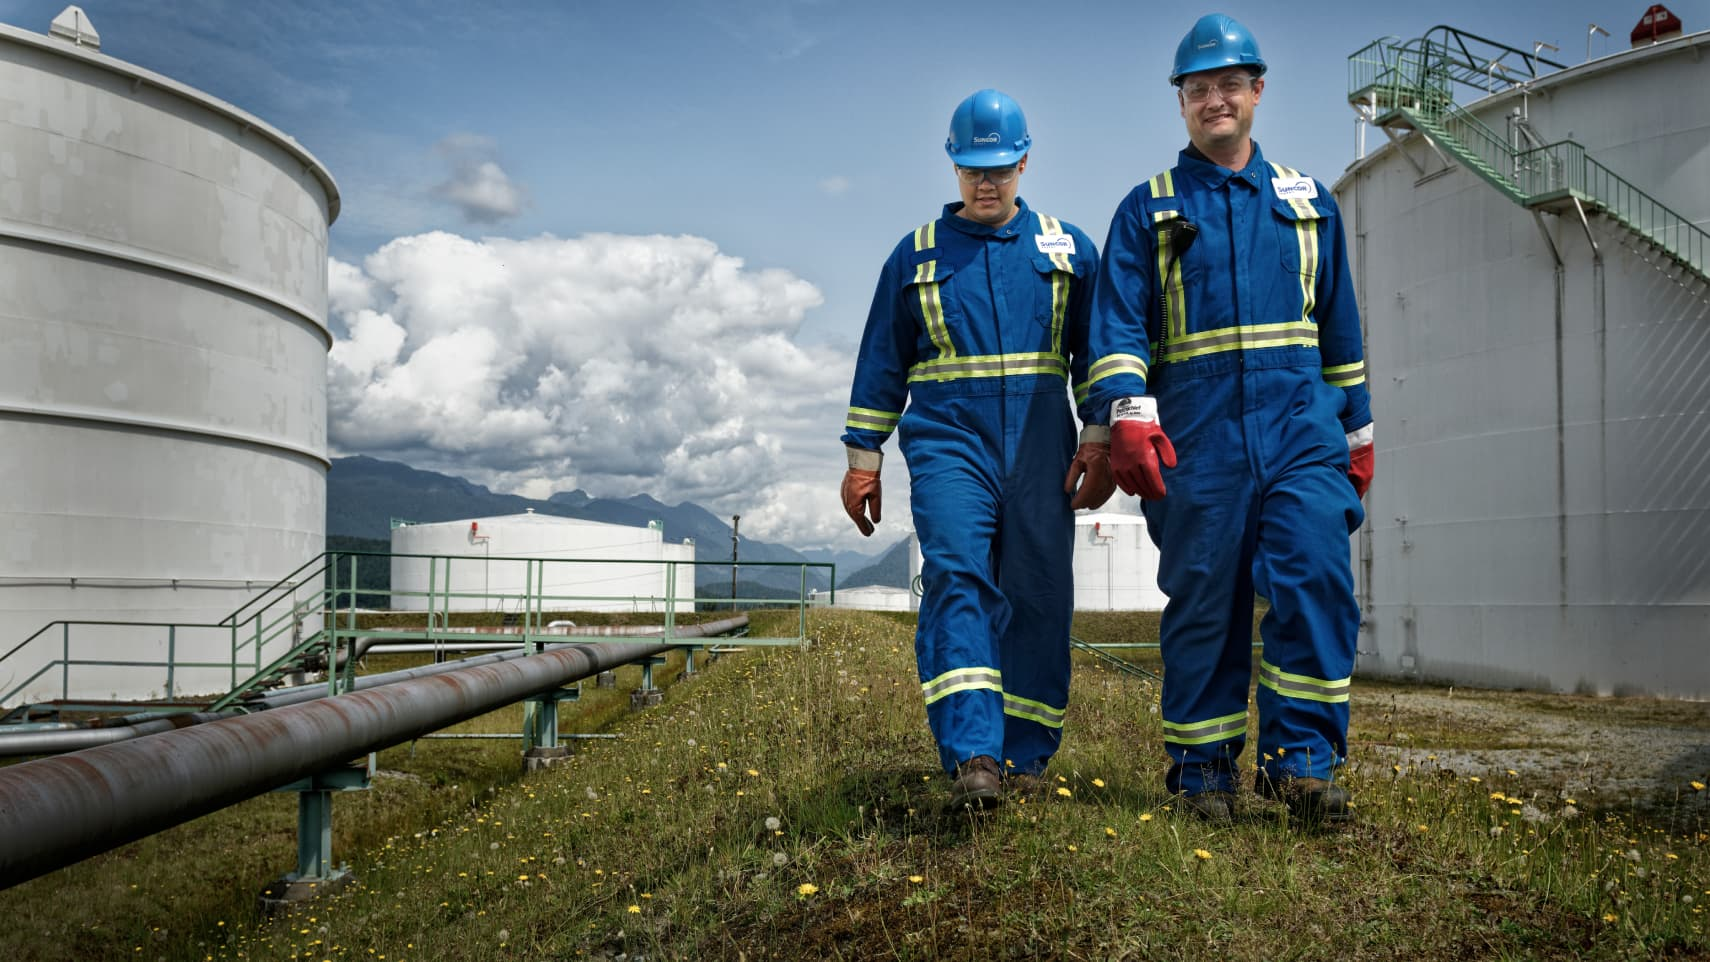 man and woman walking side by side in Suncor protective equipment between tanks